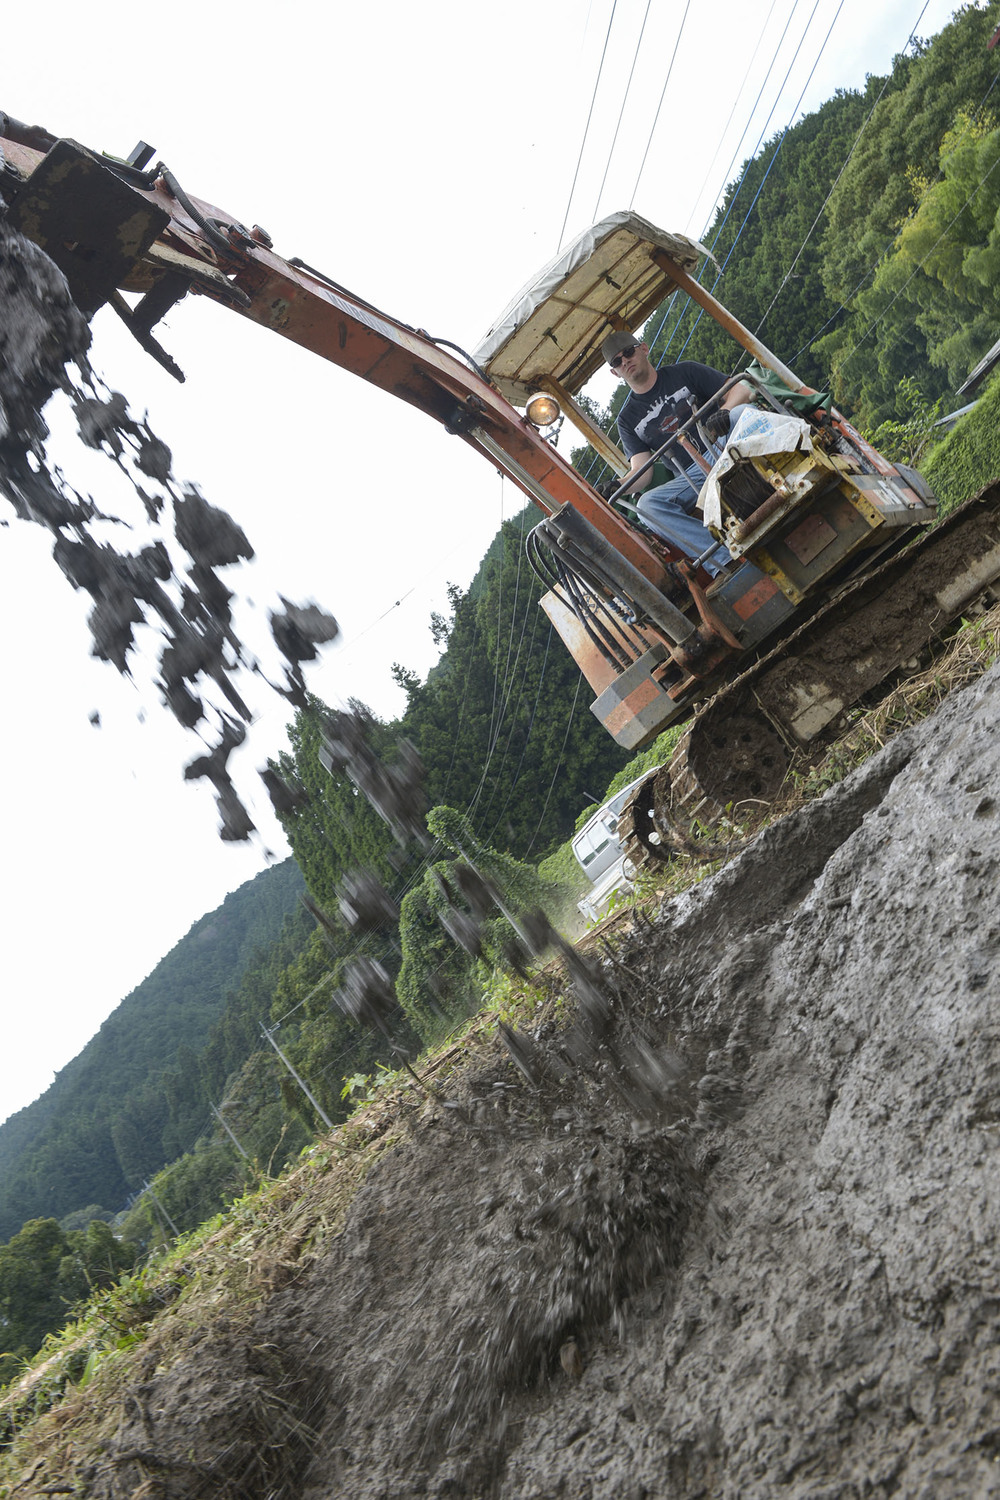 Tech. Sgt. Marshall Johnston, 374th Civil Engineer Squadron structures craftsman, drops mud on the side of an irrigation creek at Kanuma City, Tochigi prefecture, Japan, Sept. 15, 2015. Johnston used mud taken from a clogged irrigation drain to fix an eroded creek wall that was leaking into a farmer's field. More than 60 volunteers from Yokota Air Base ventured to the prefecture to assist with post-flood and landslide relief. (U.S. Air Force photo by Staff Sgt. Cody H. Ramirez/Released)